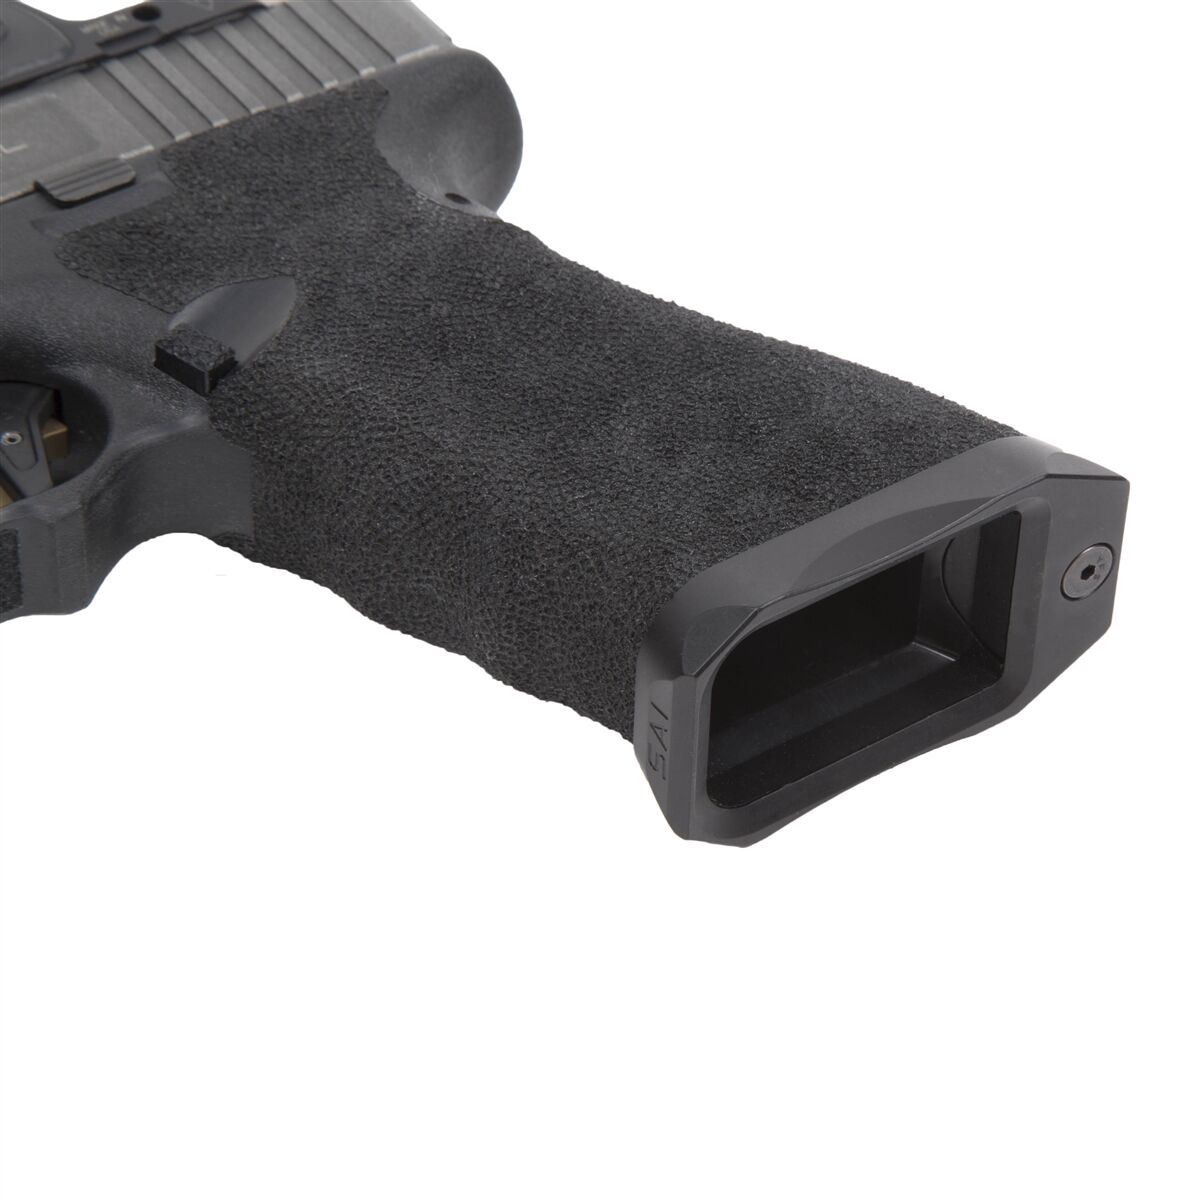 Viking Tactics VTAC / Salient SAI MAGWELL for Glock 19, 23, 32, 38 - for  GEN 3